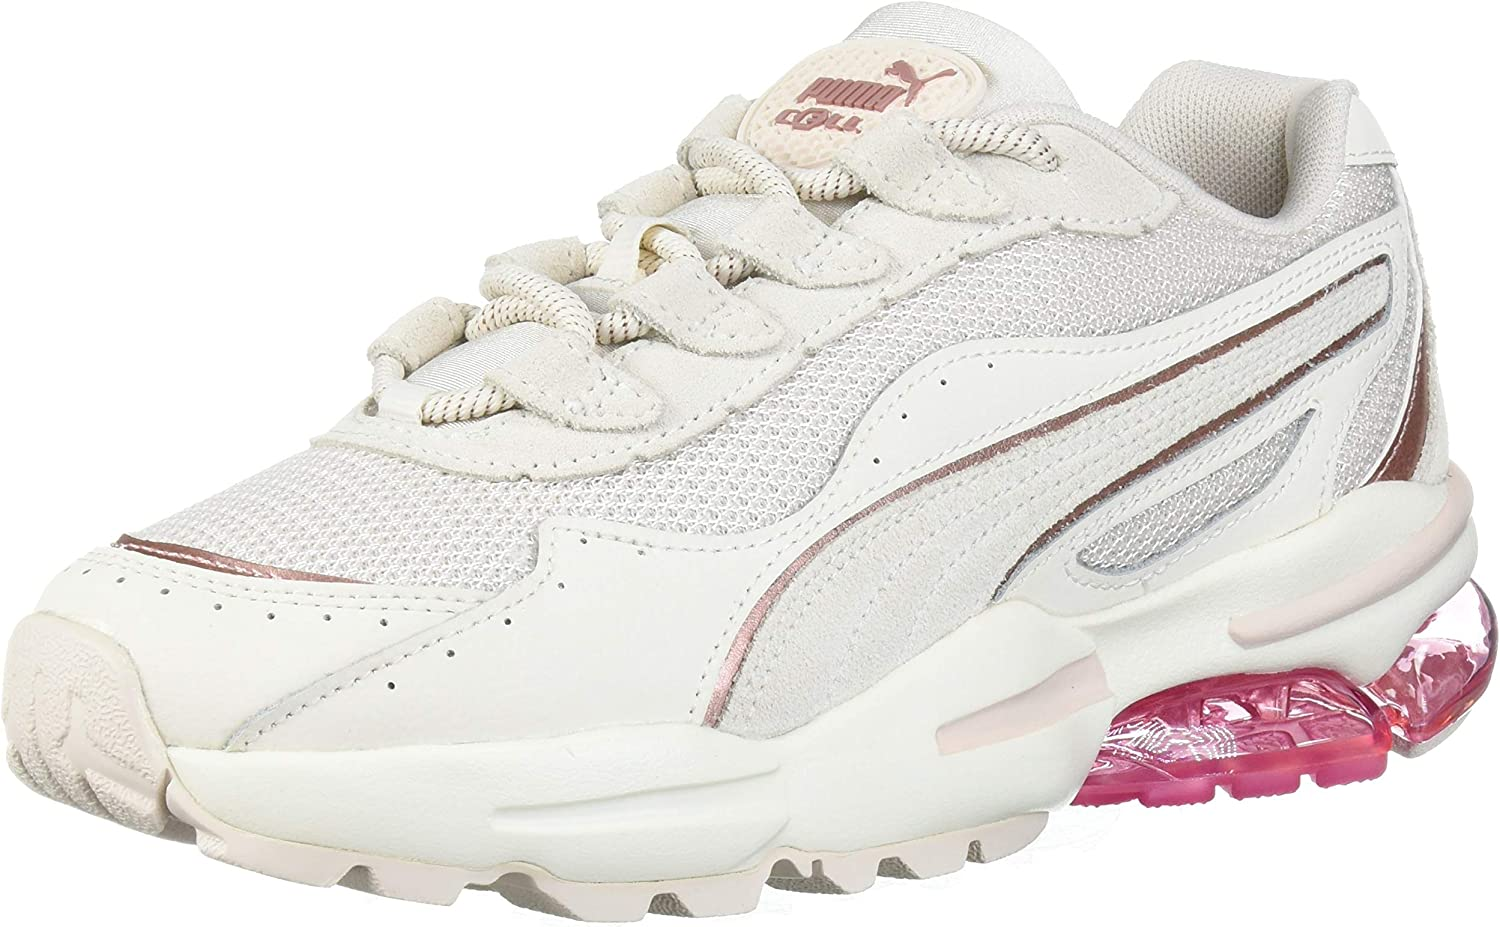 Details about Puma Cell Stellar Soft Womens Rose Casual Lifestyle Shoes Sneakers 370948 01